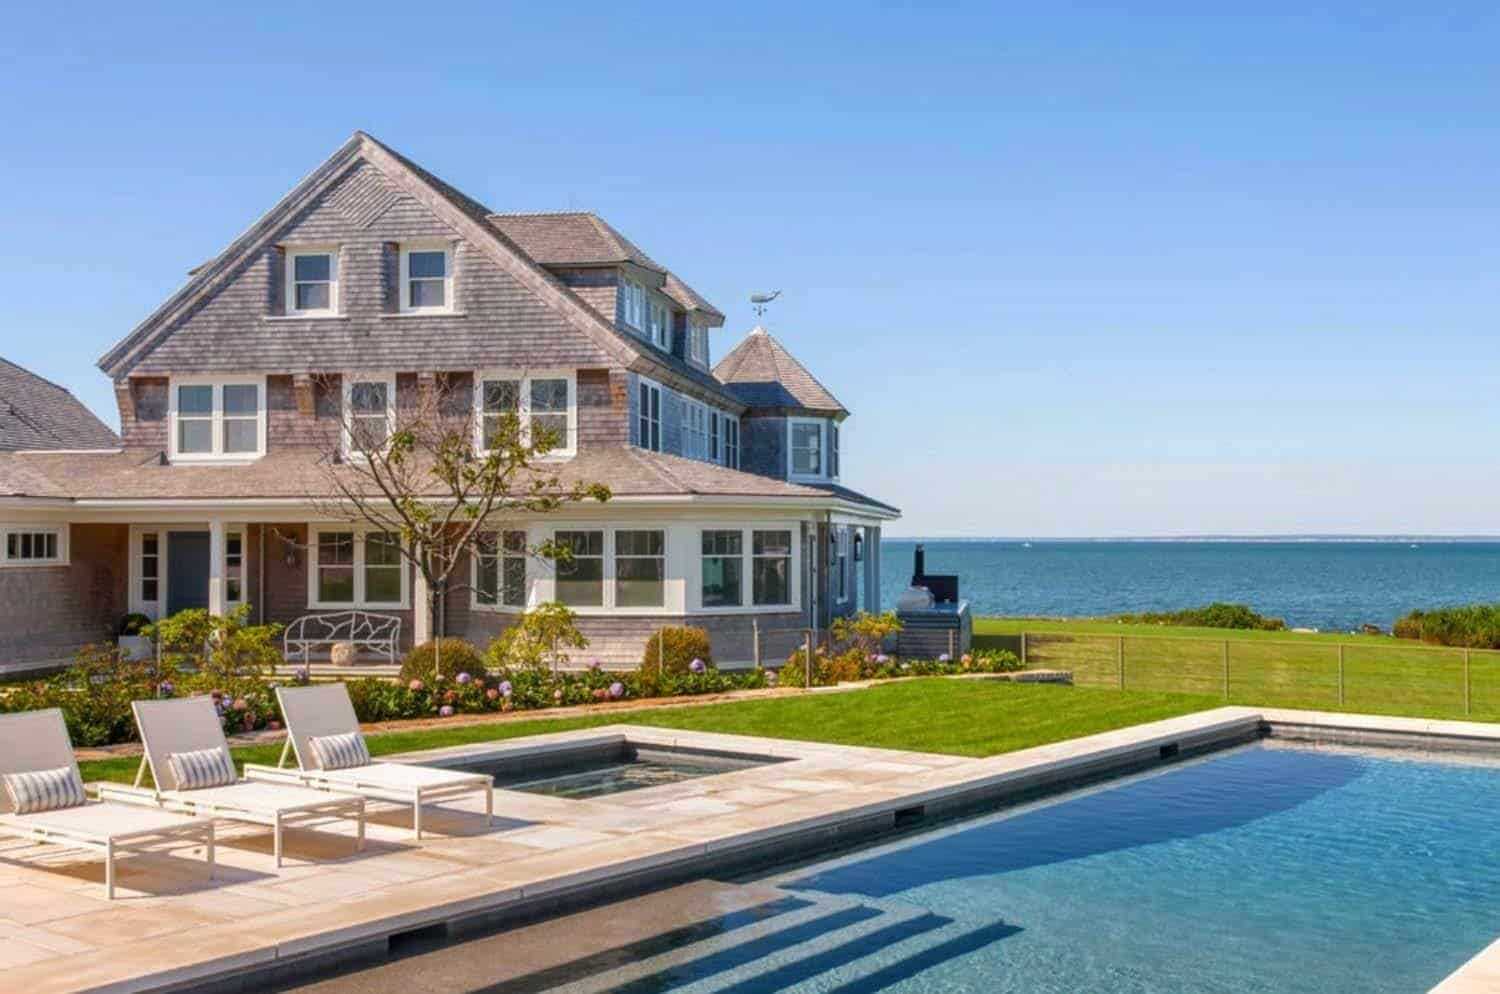 Heirloom cottage converted to seaside dream home in Cape Cod